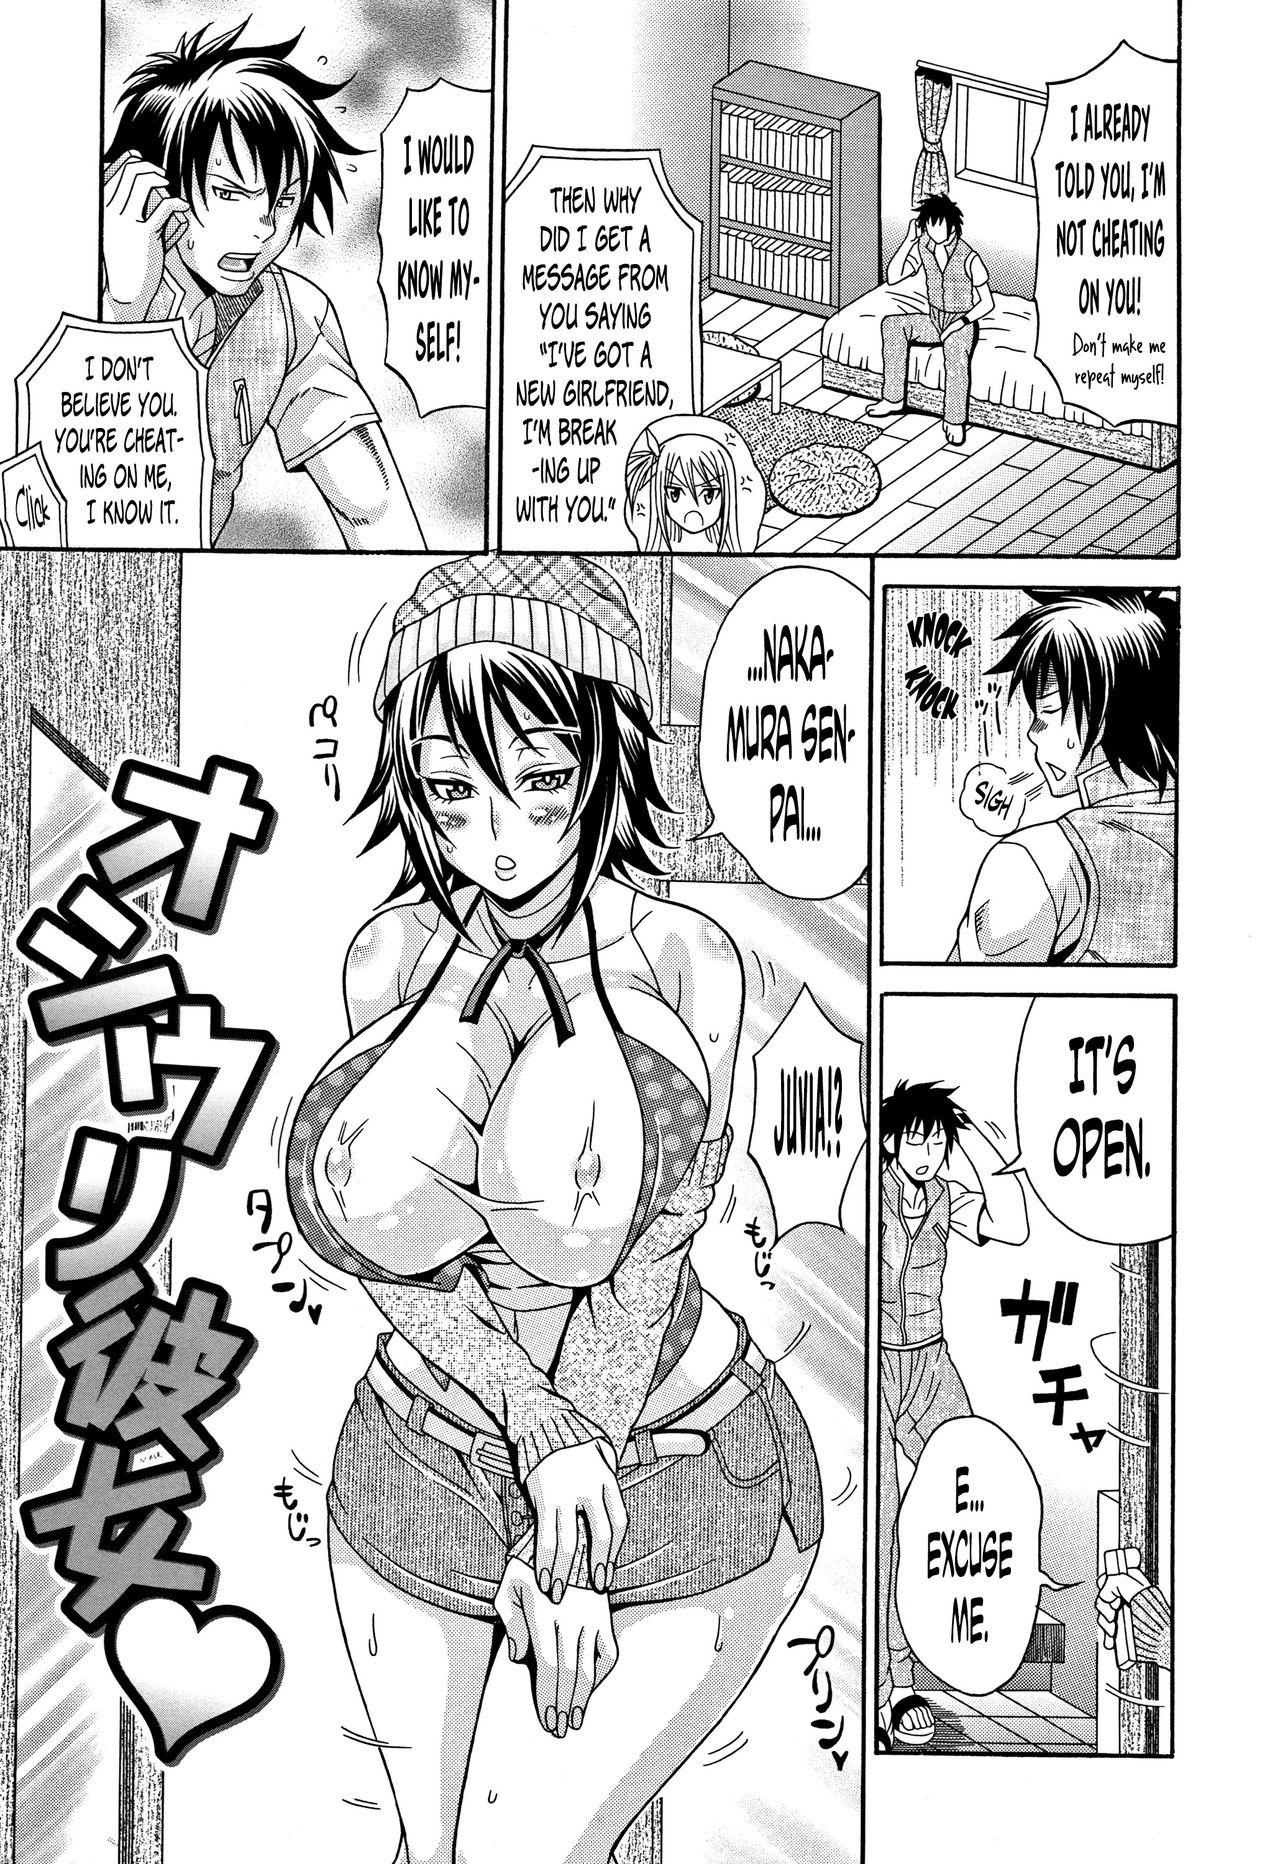 [Andou Hiroyuki] Mamire Chichi - Sticky Tits Feel Hot All Over. Ch.1-7 [English] [doujin-moe.us] 55